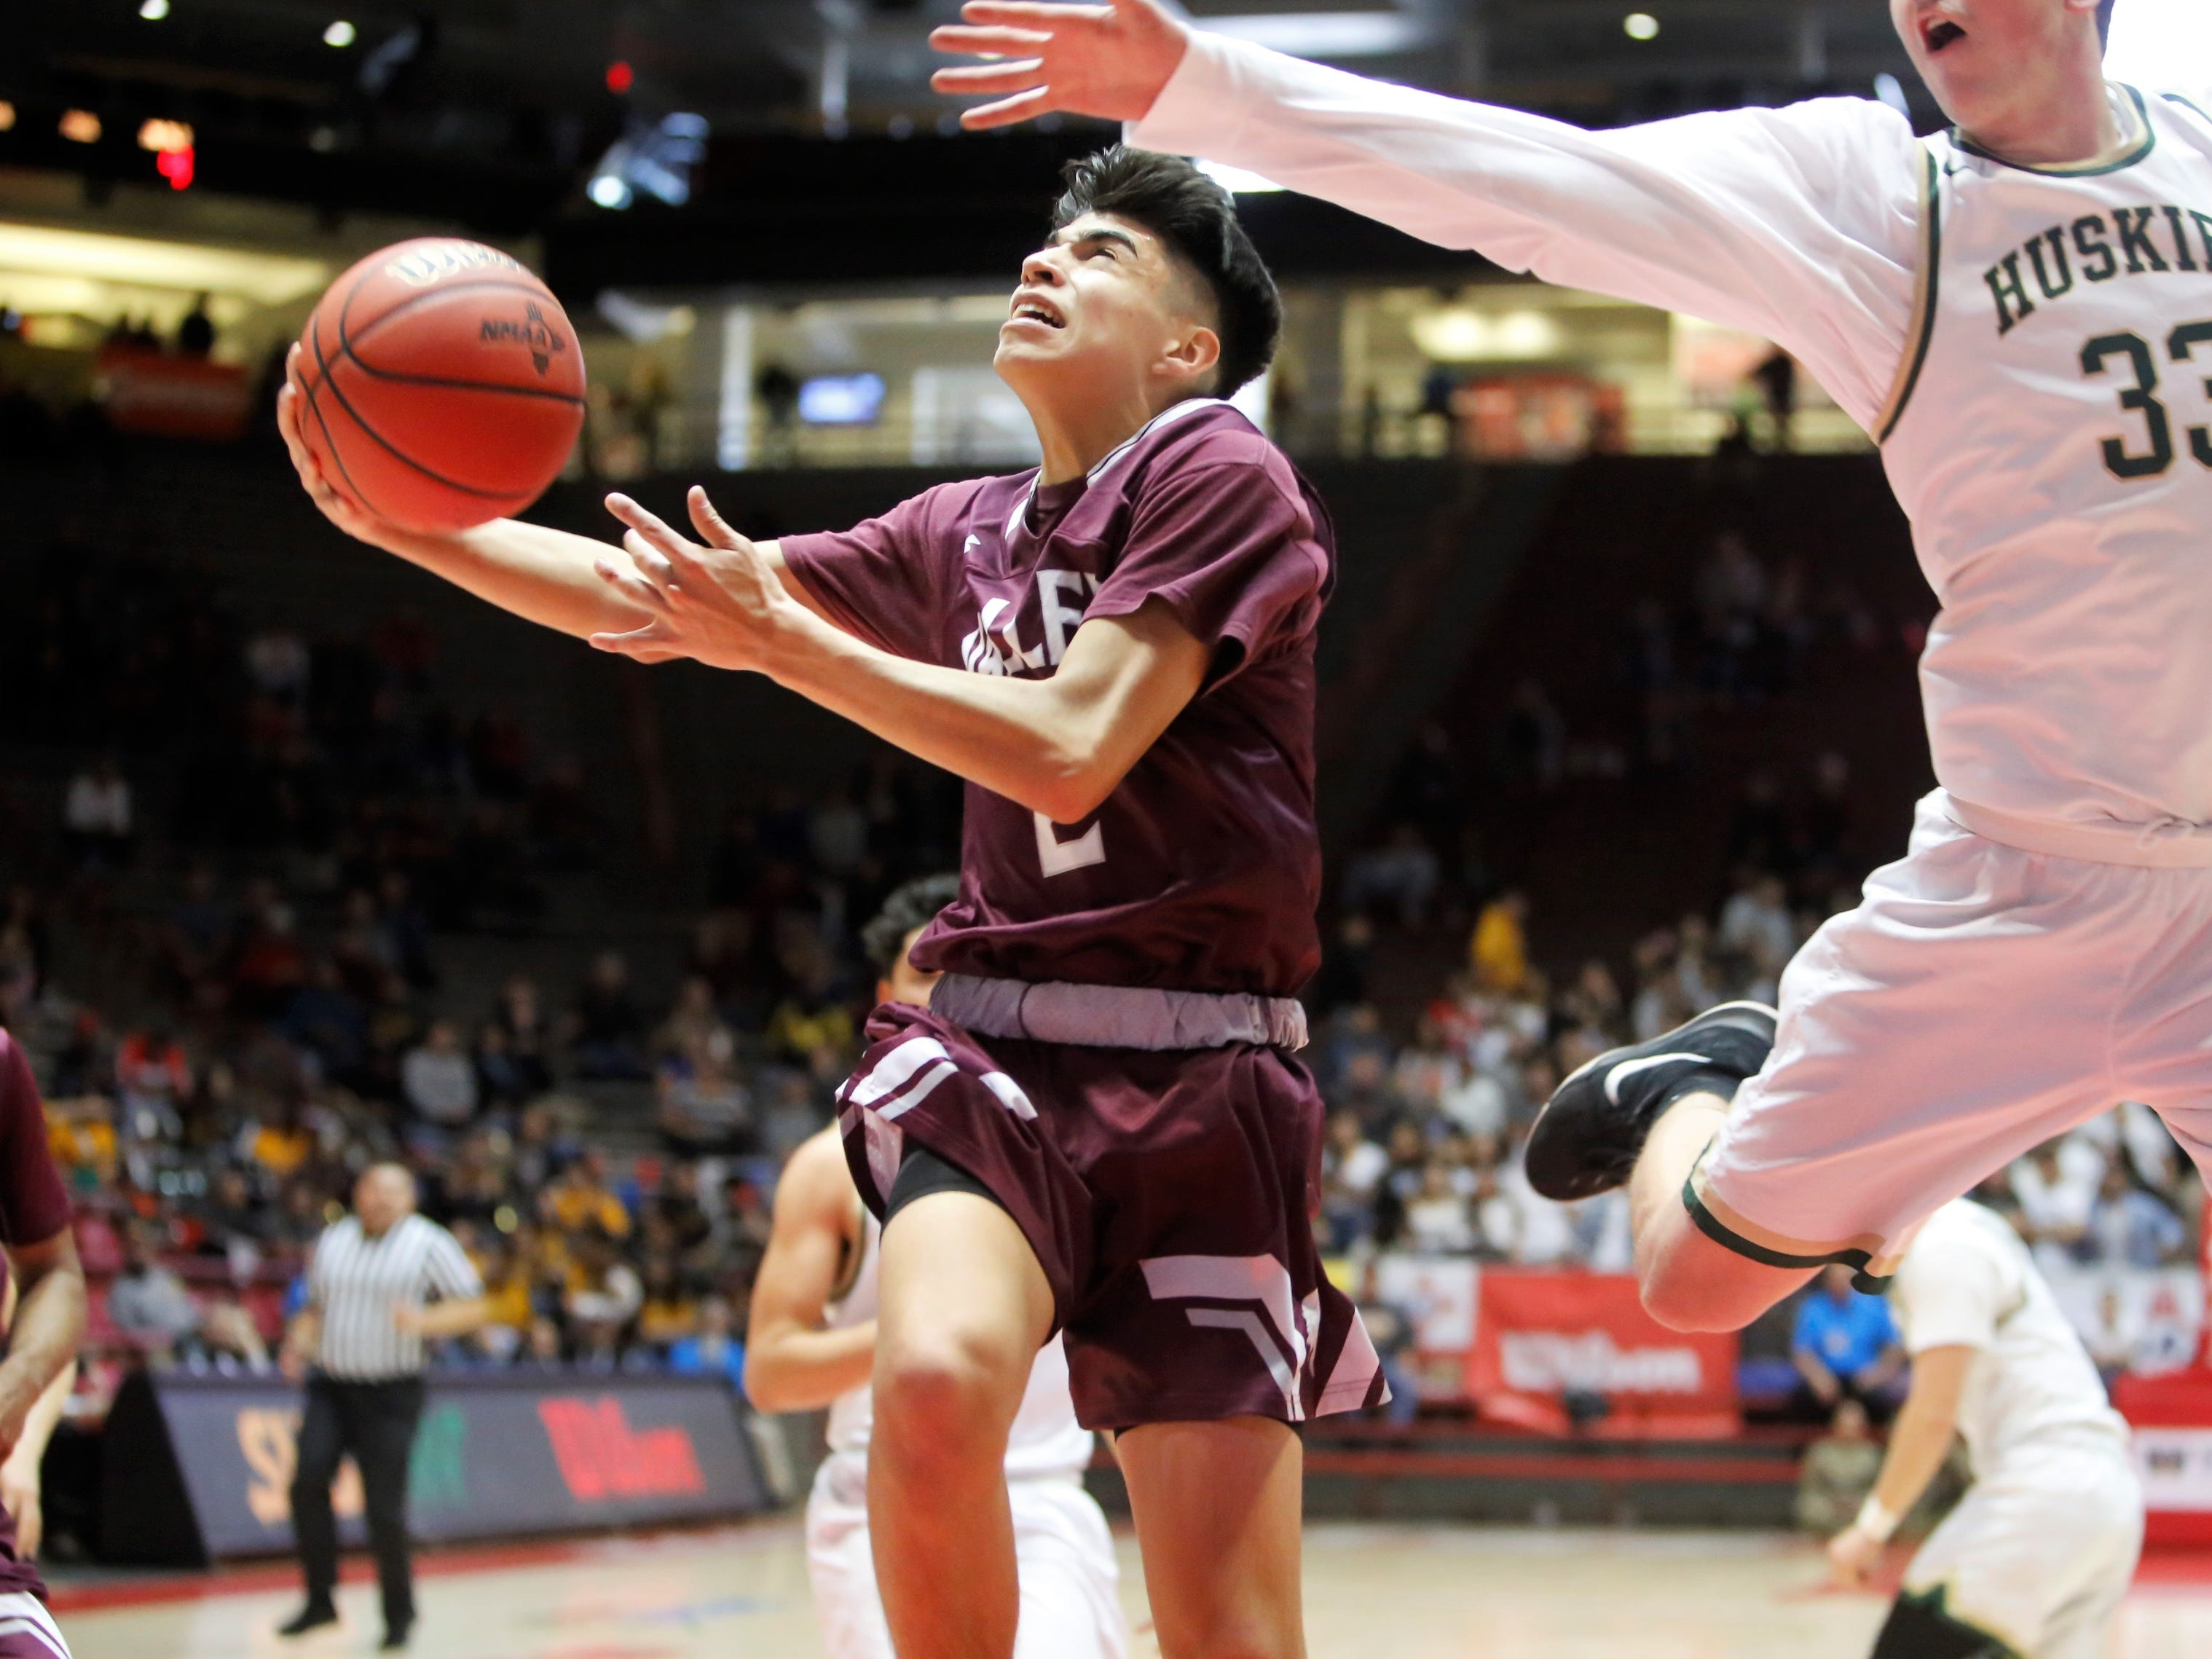 Valley's Derick Chavez drives in for a layup against Hope Christian during Wednesday's 4A state quarterfinals at Dreamstyle Arena in Albuquerque.